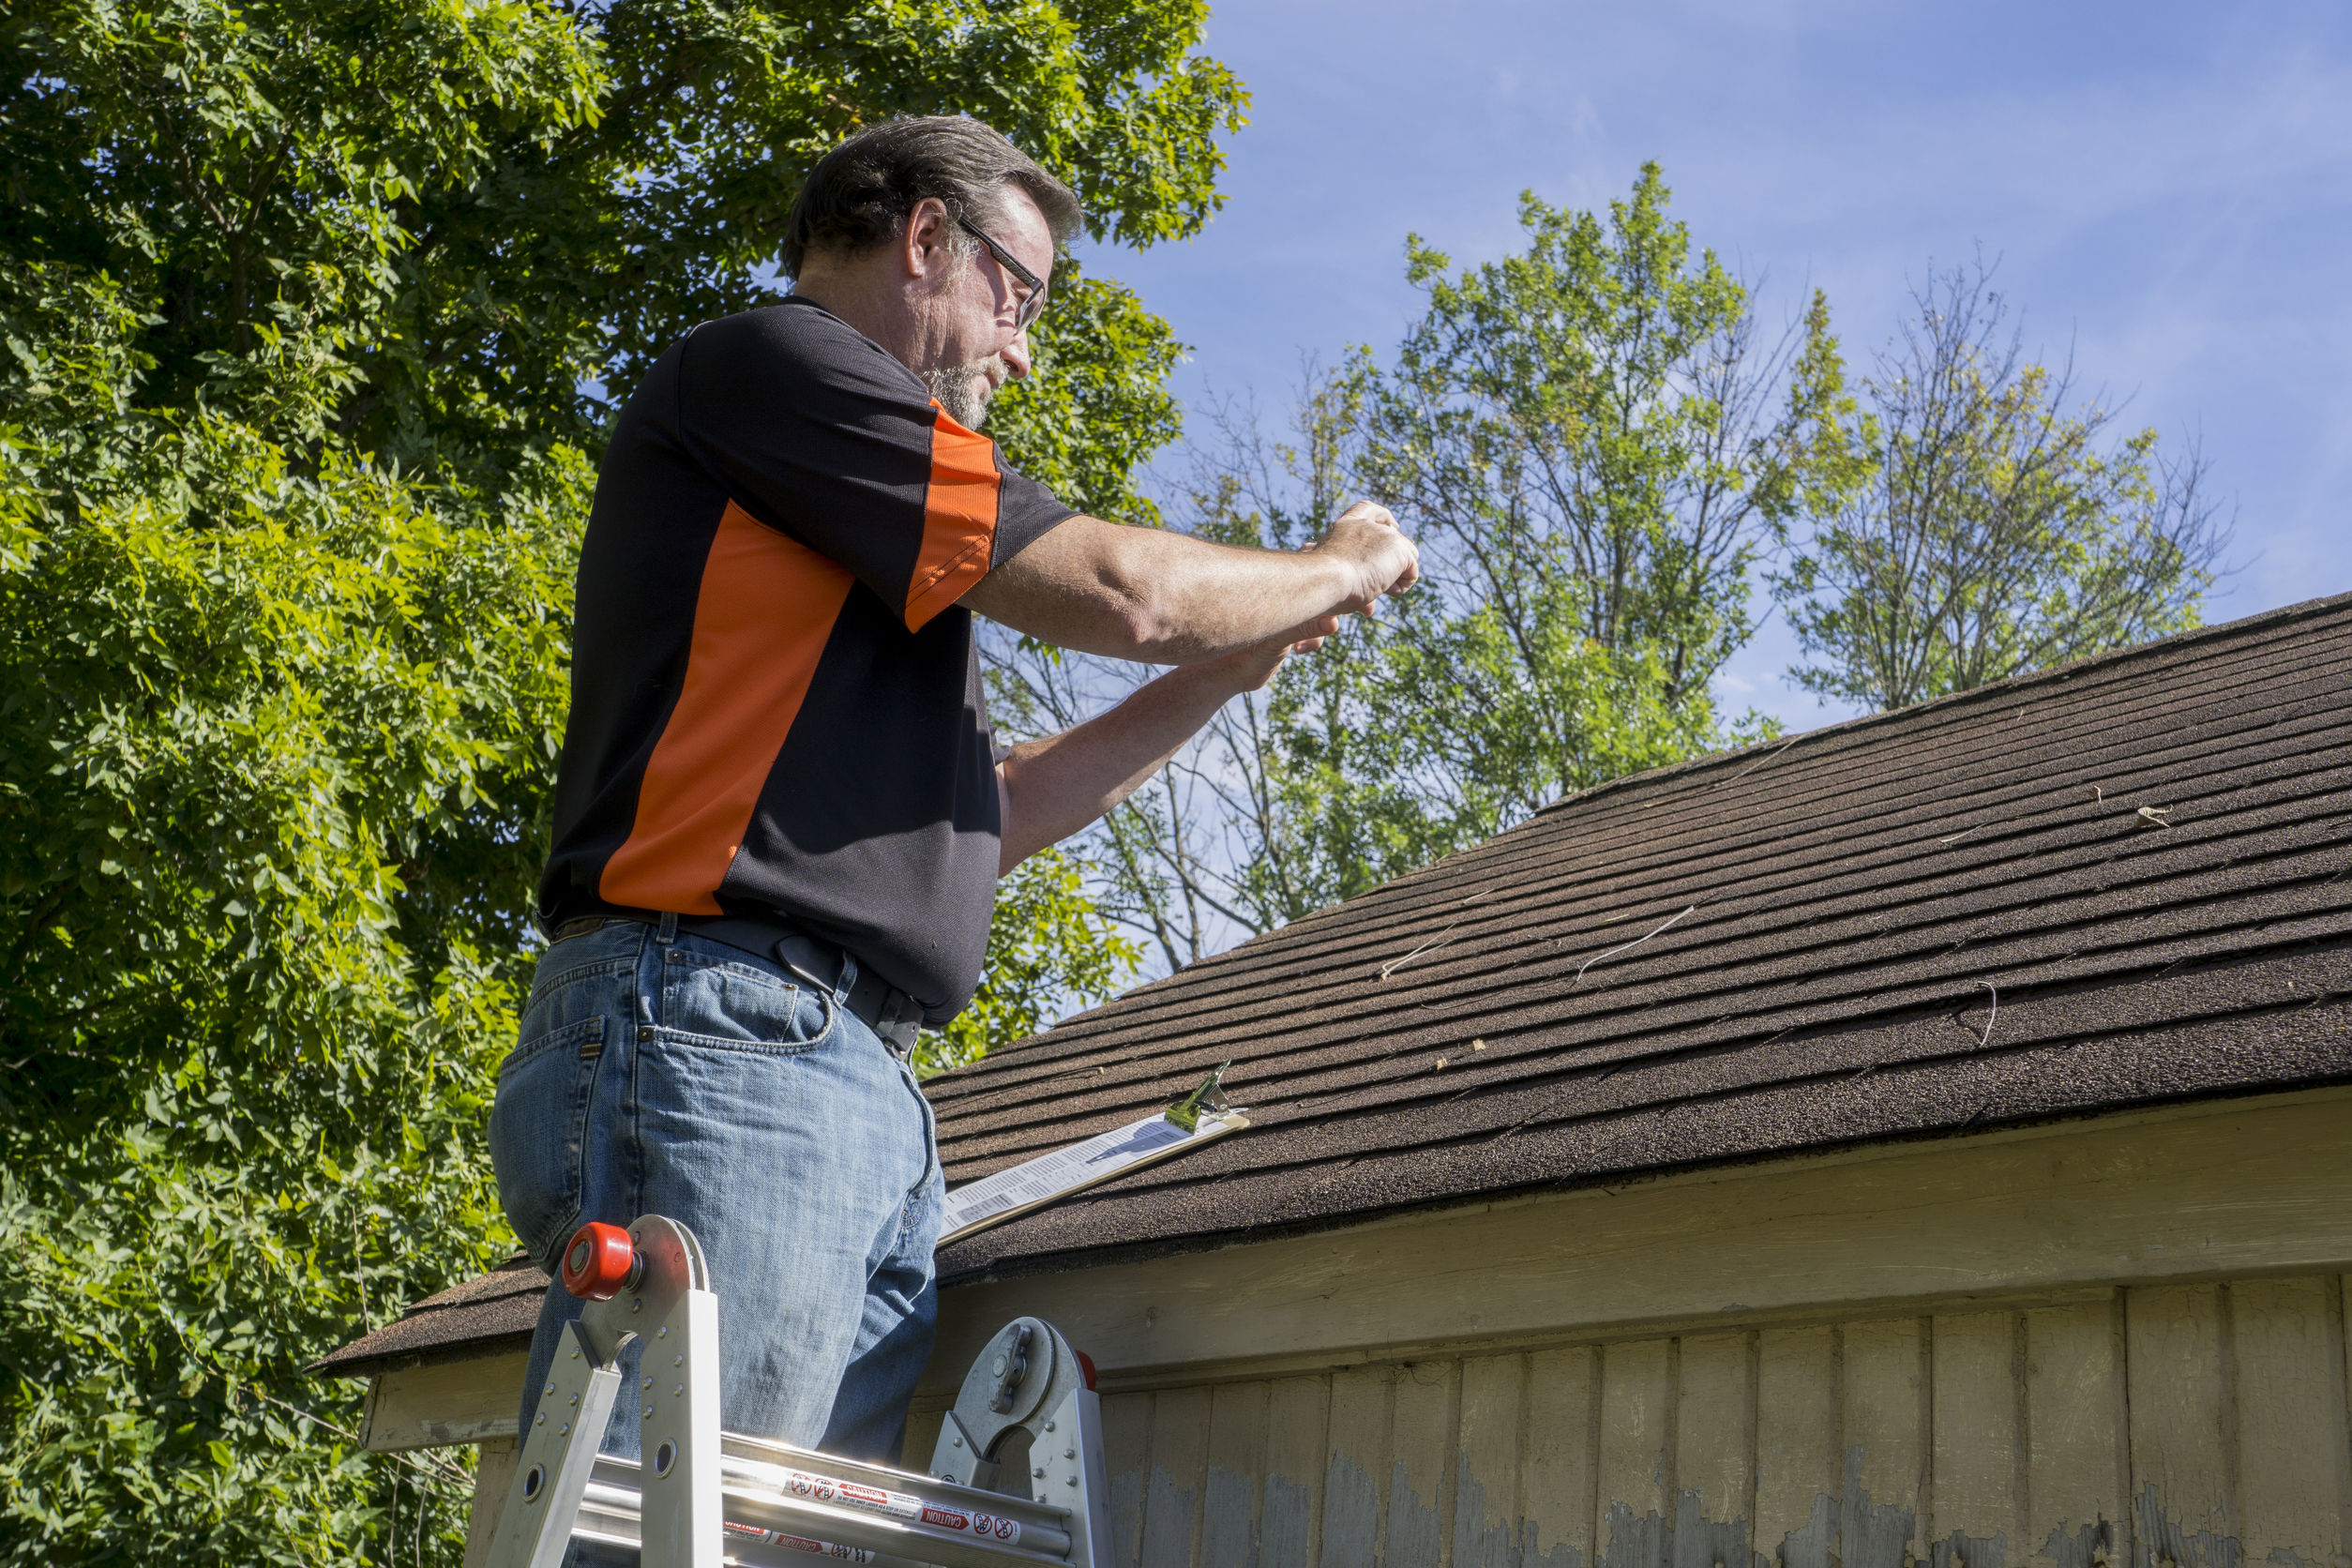 roofing-contractor-leakage